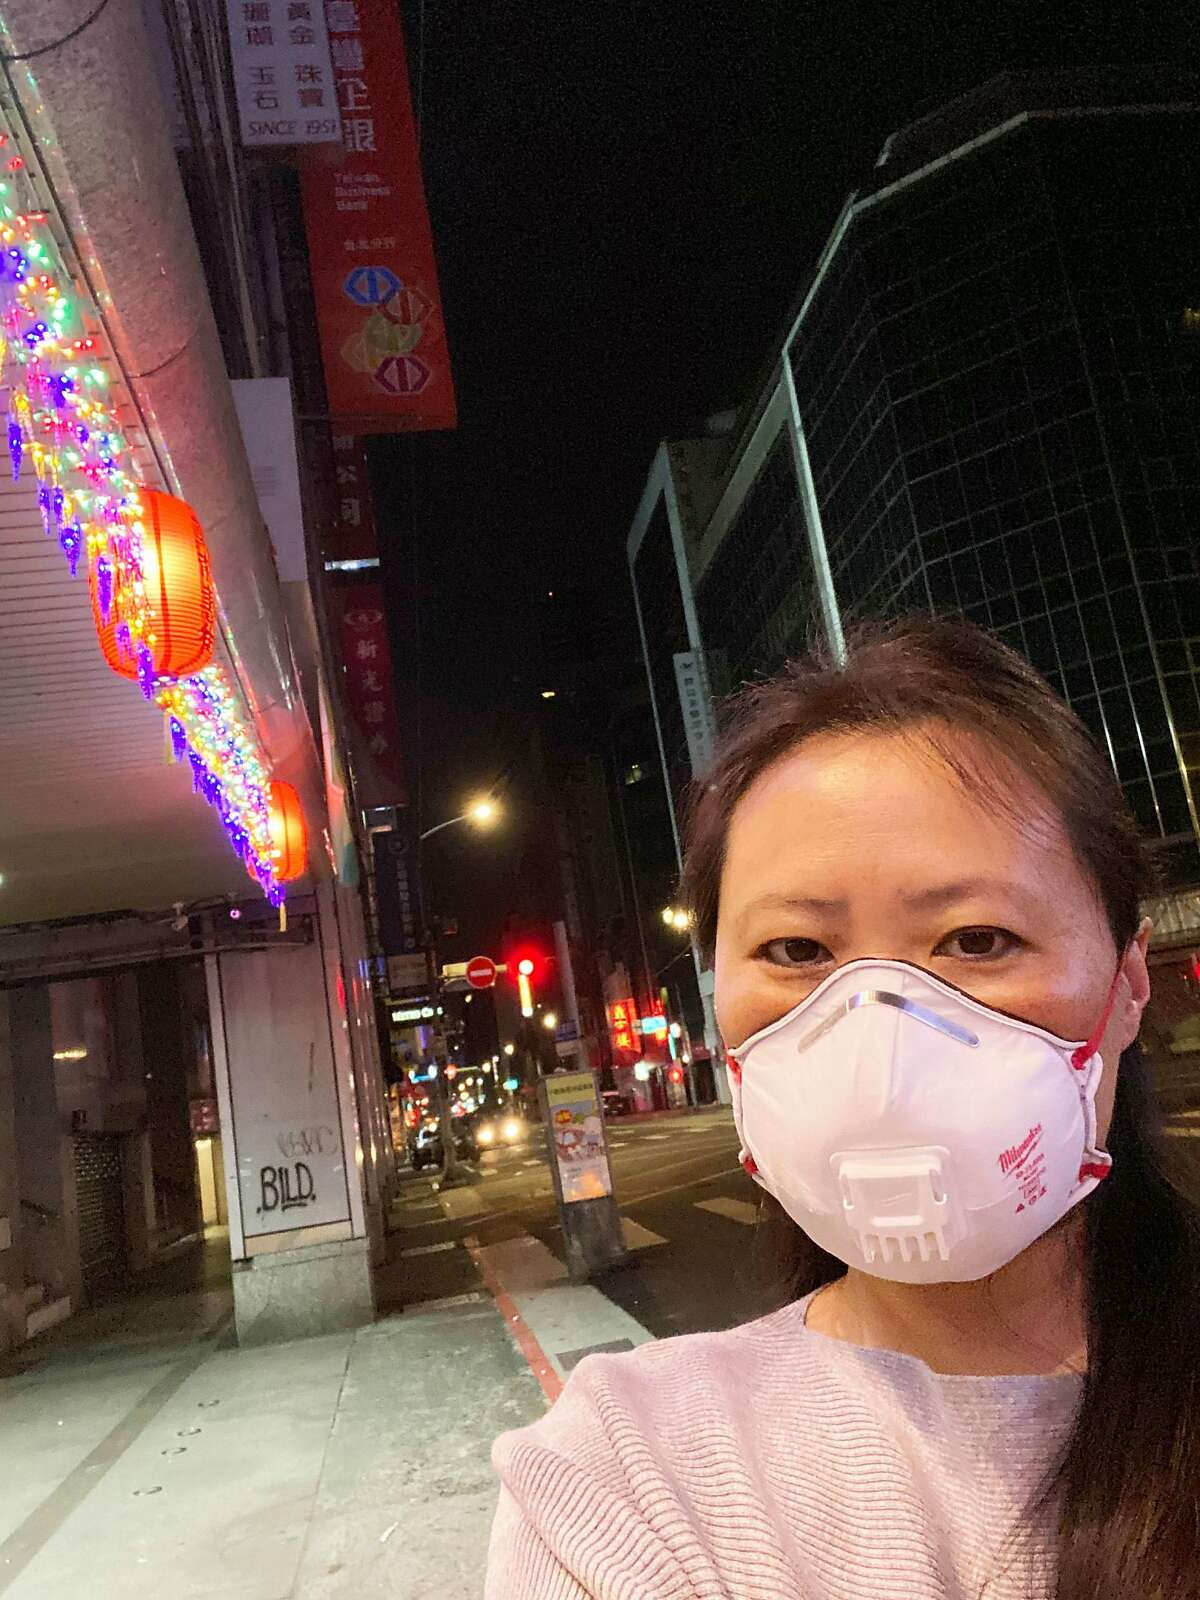 Native San Franciscan Connie Wong moved her parents, who are both in their 80s, from the city to Taiwan because of coronavirus fears. She feels that they're safer in Taiwan, where the virus has not overtaken hospitals.